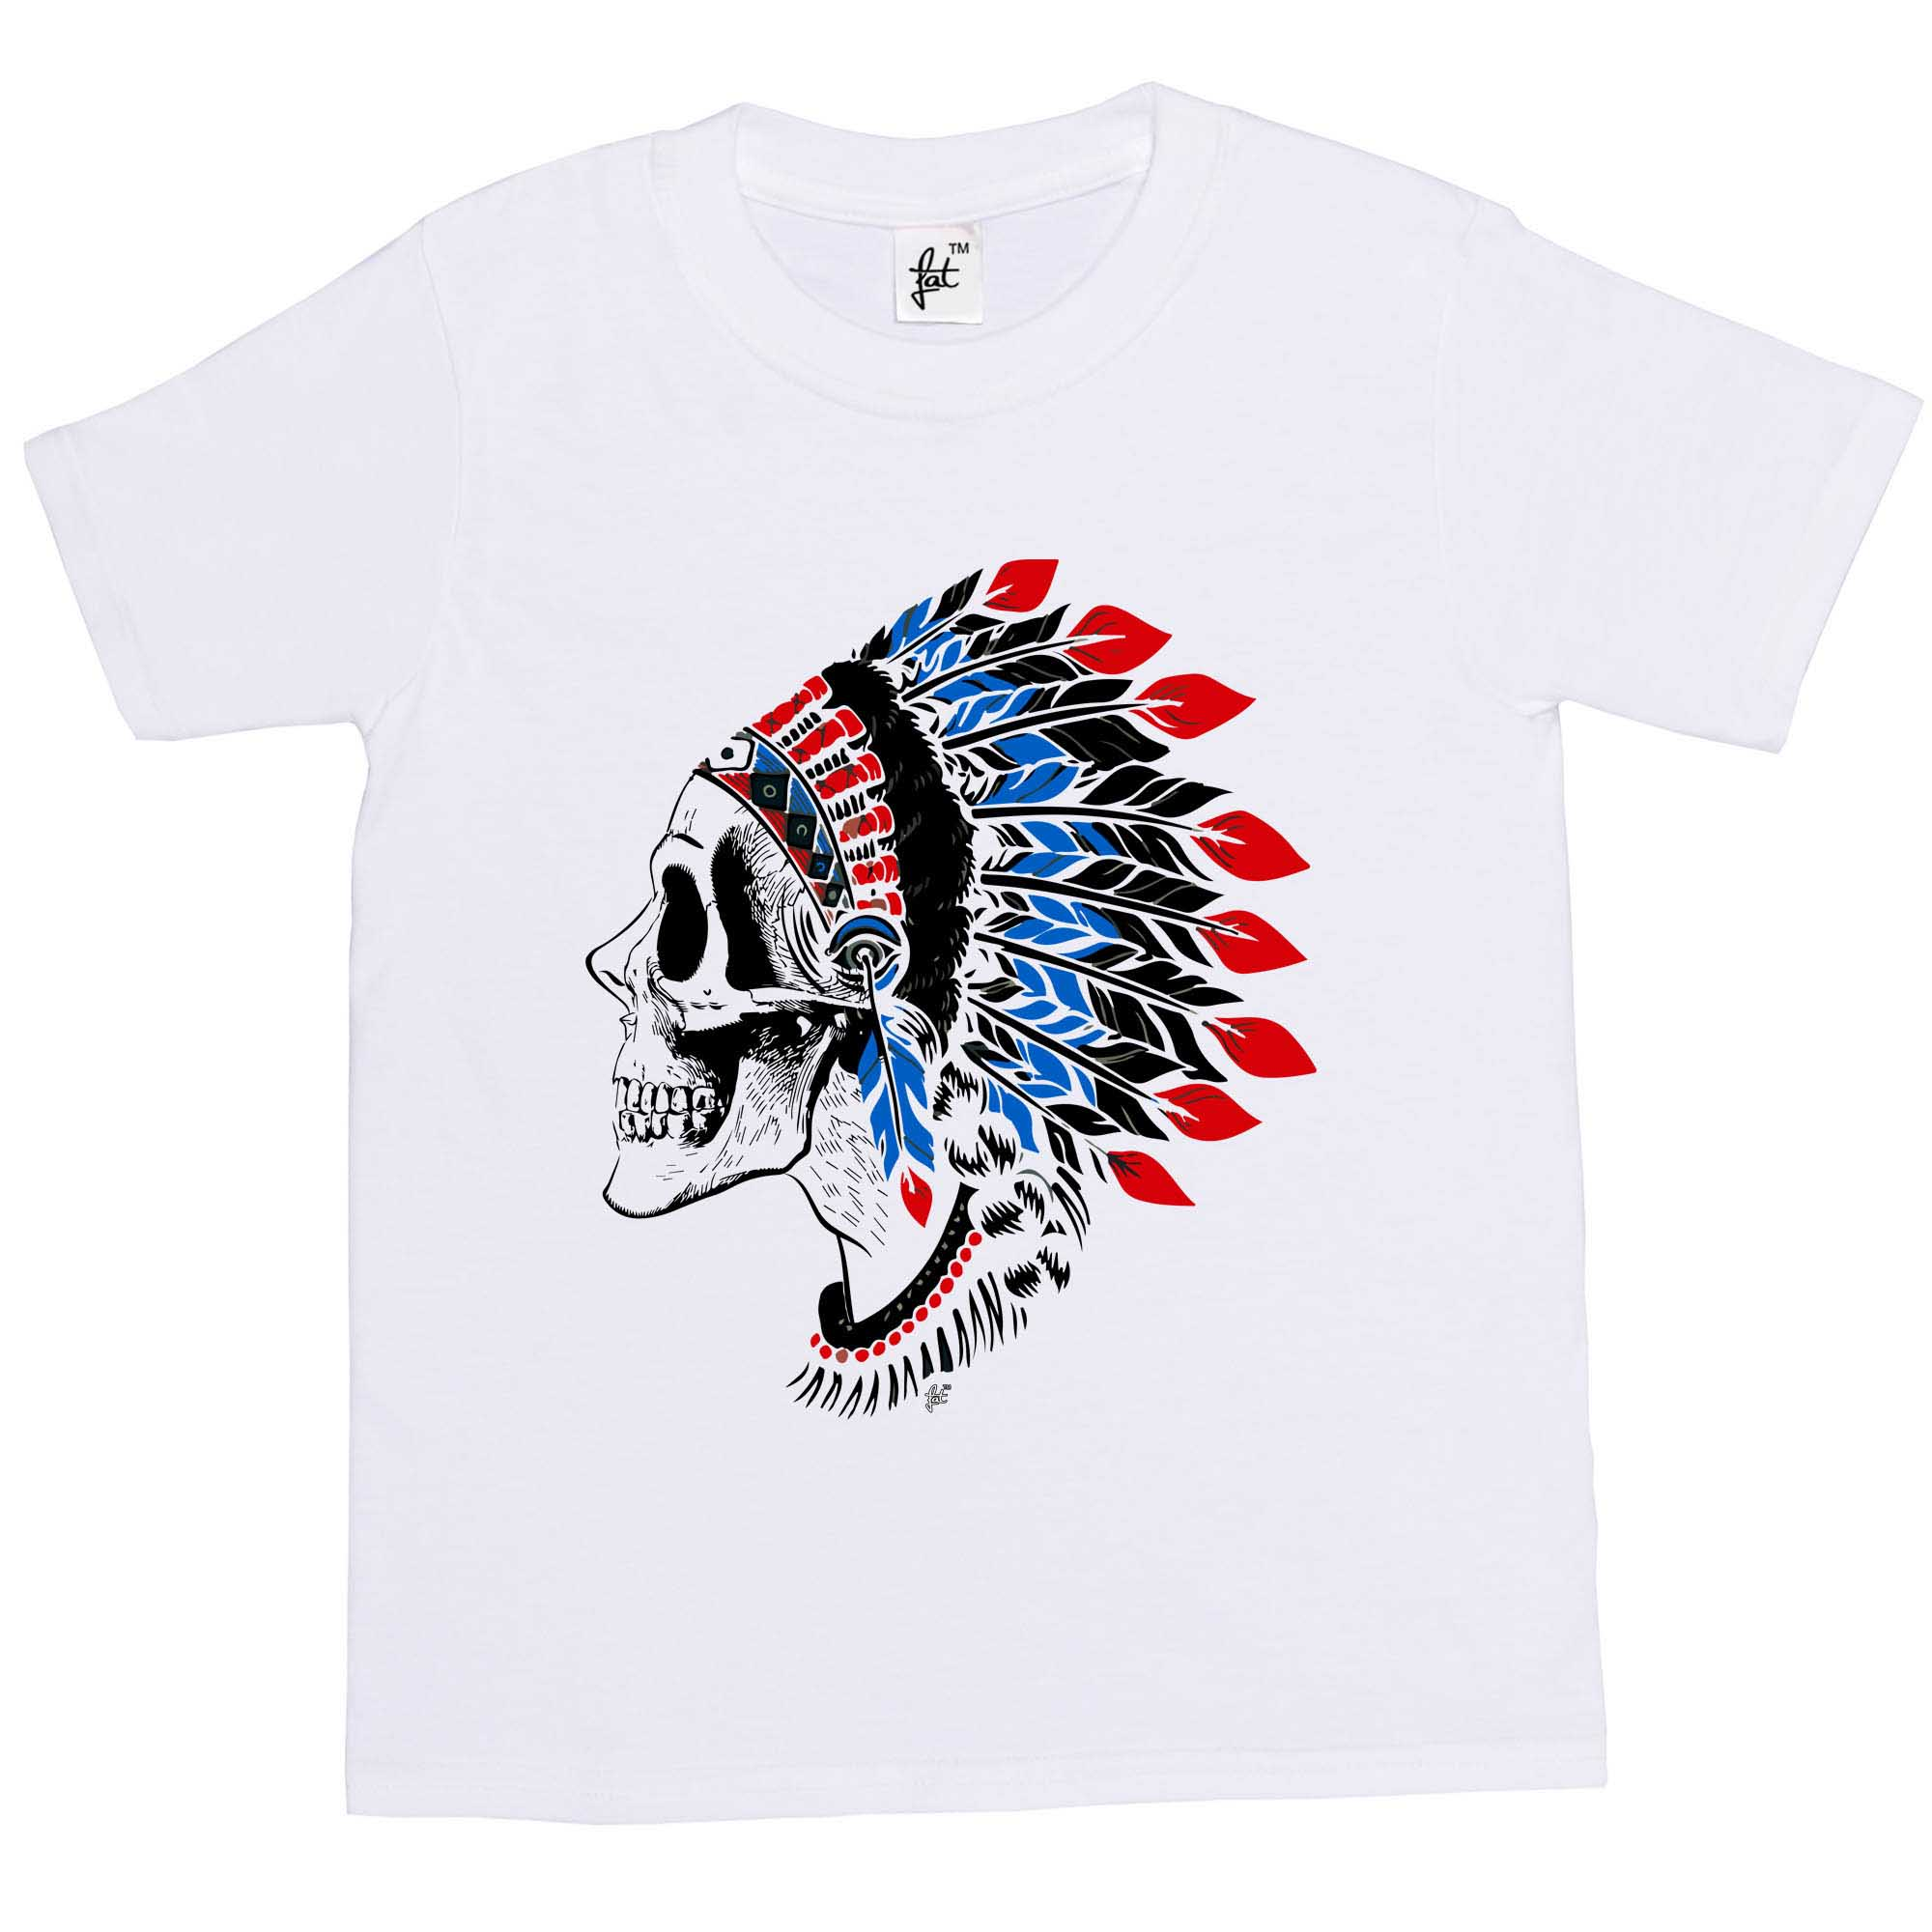 Red Indian Skull Chief Wearing Tribal Feathers Kids Boys Girls T-Shirt